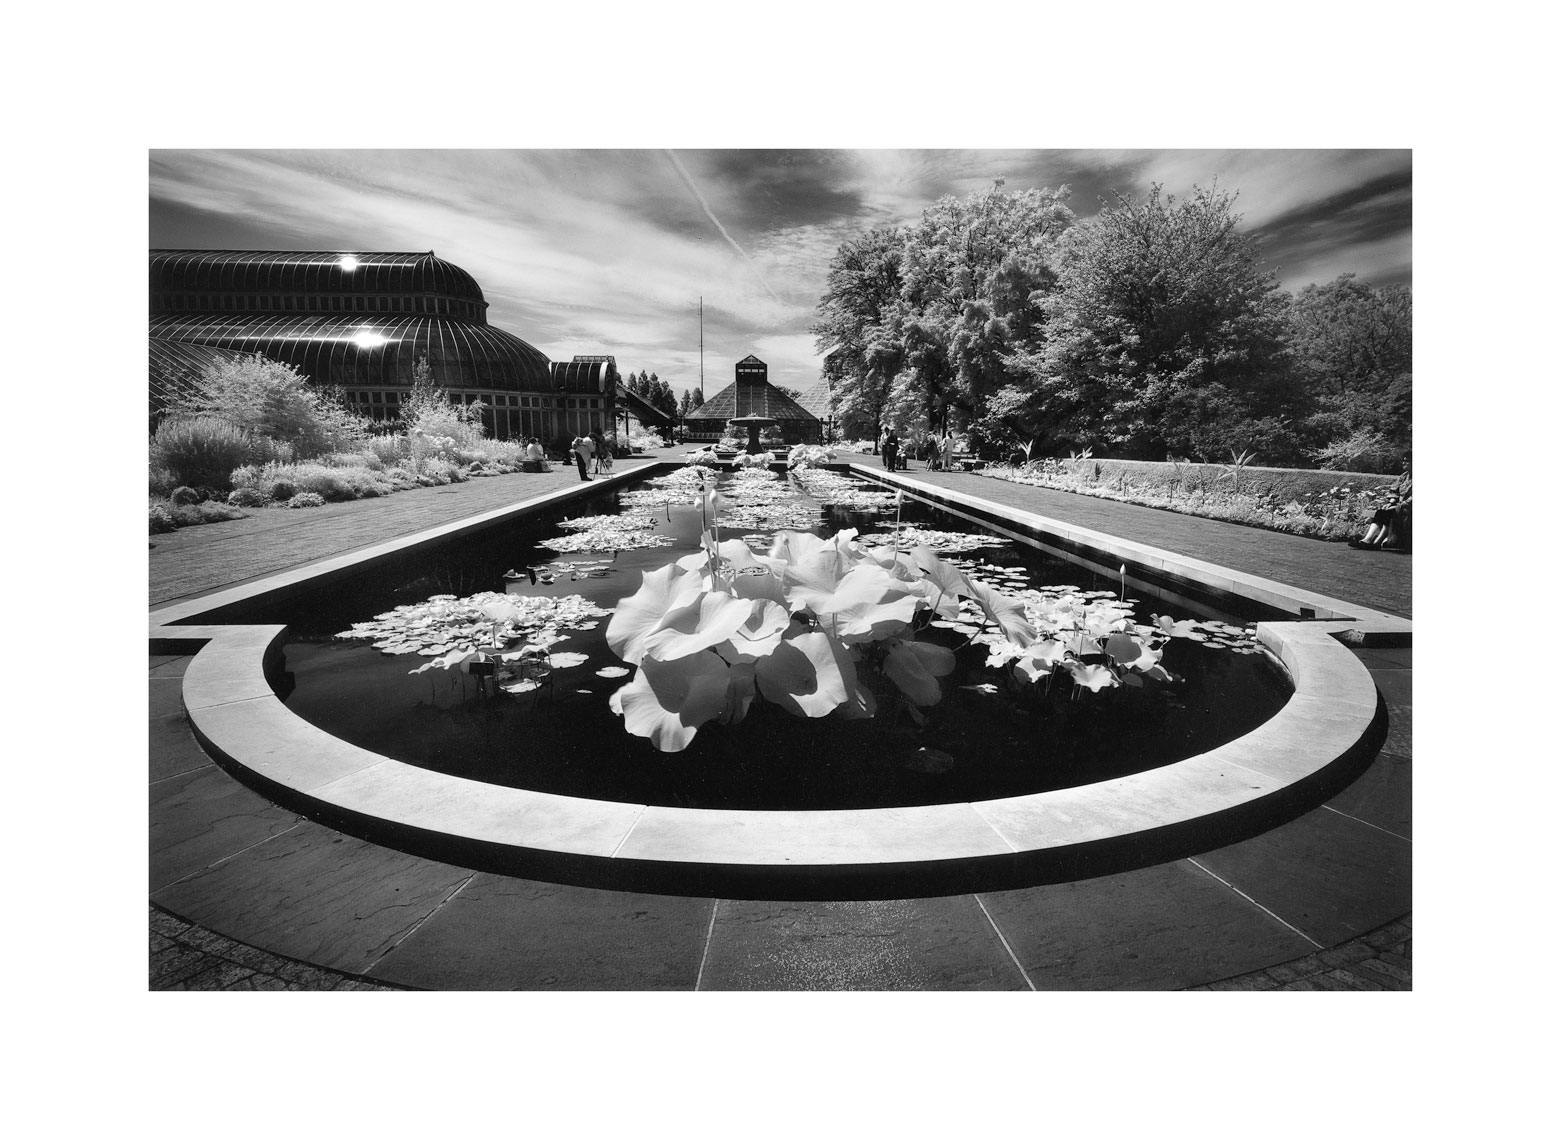 160-Lily-ponds-infrared.jpg